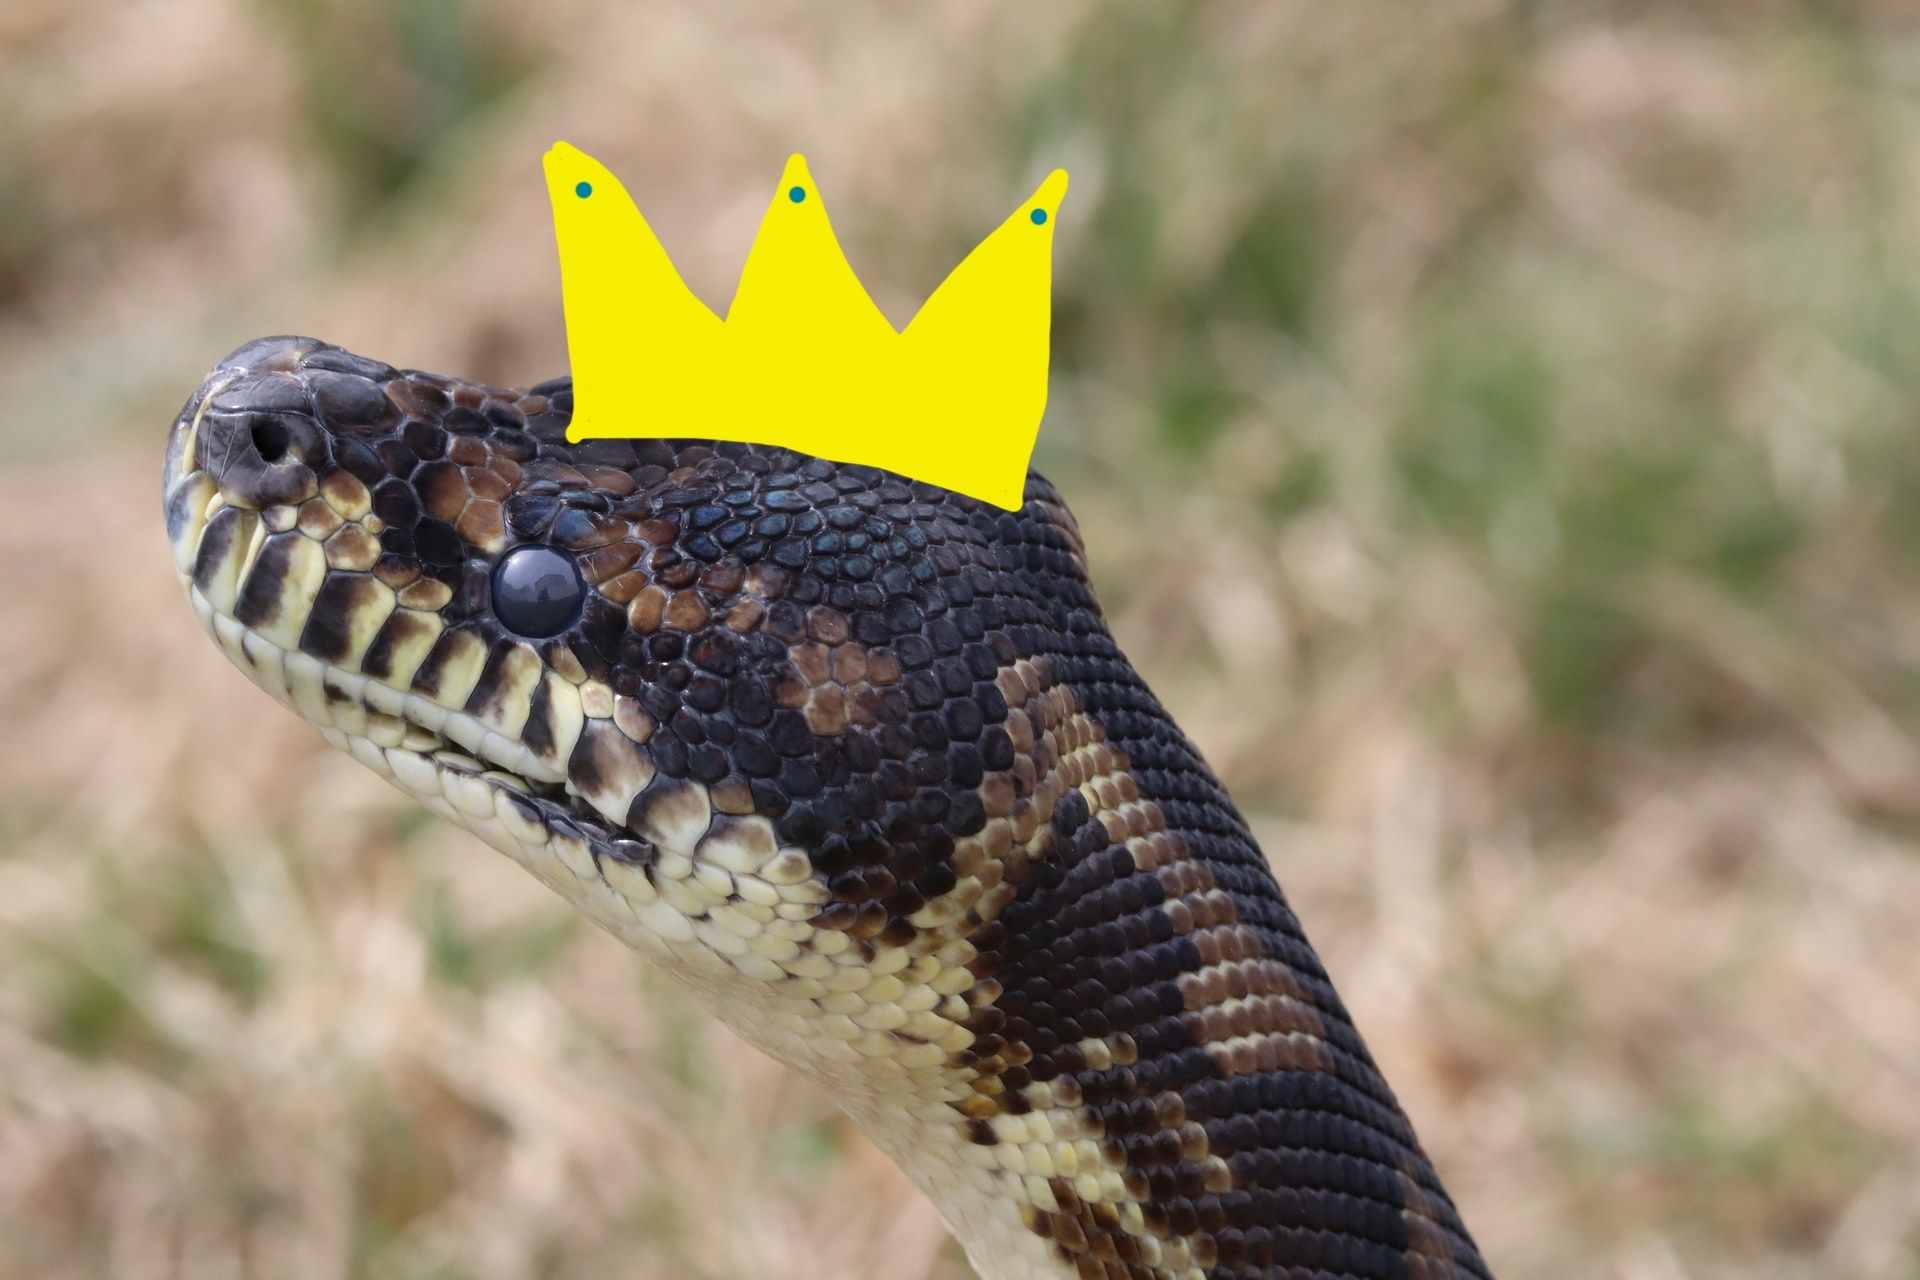 Image of an actual python with a crown drawn on its head